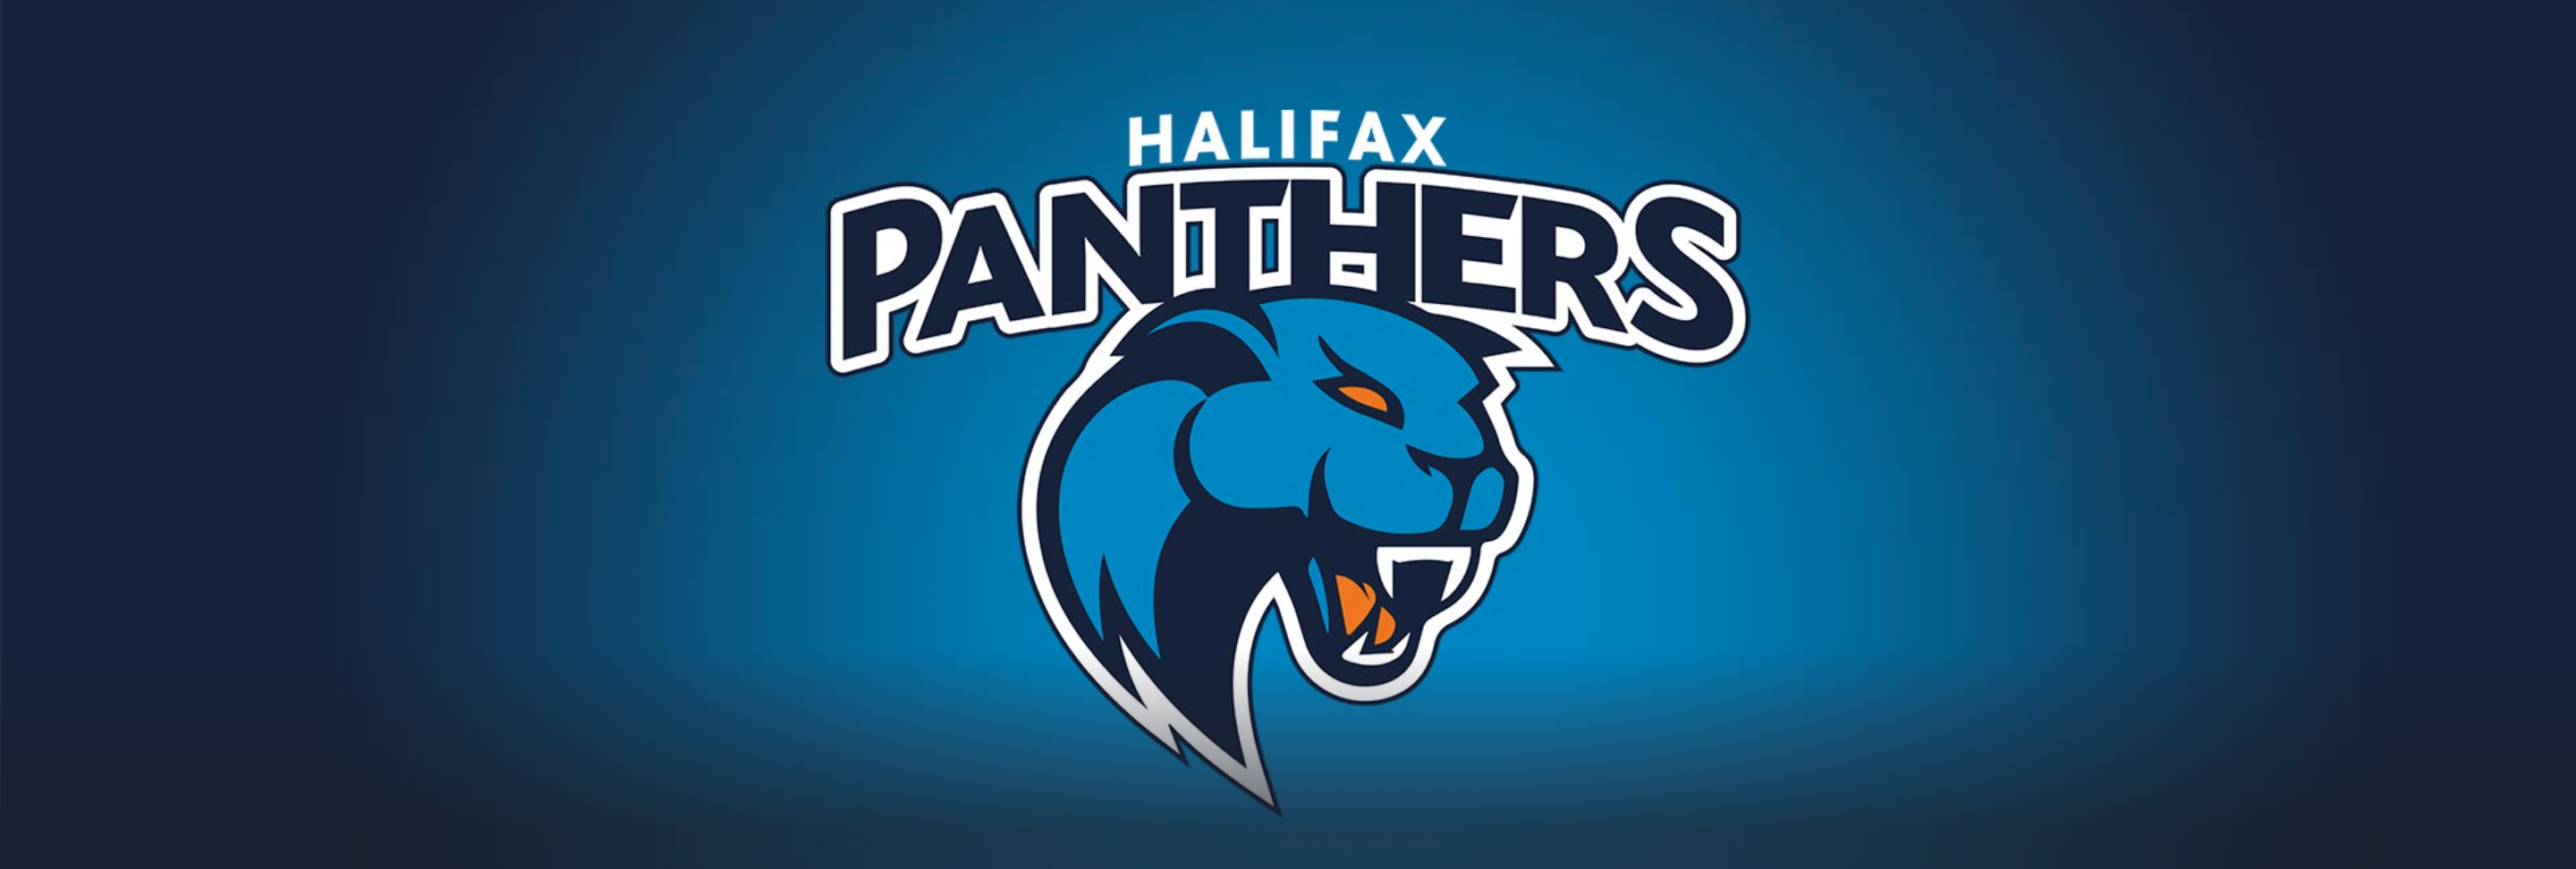 Halifax Panthers Website